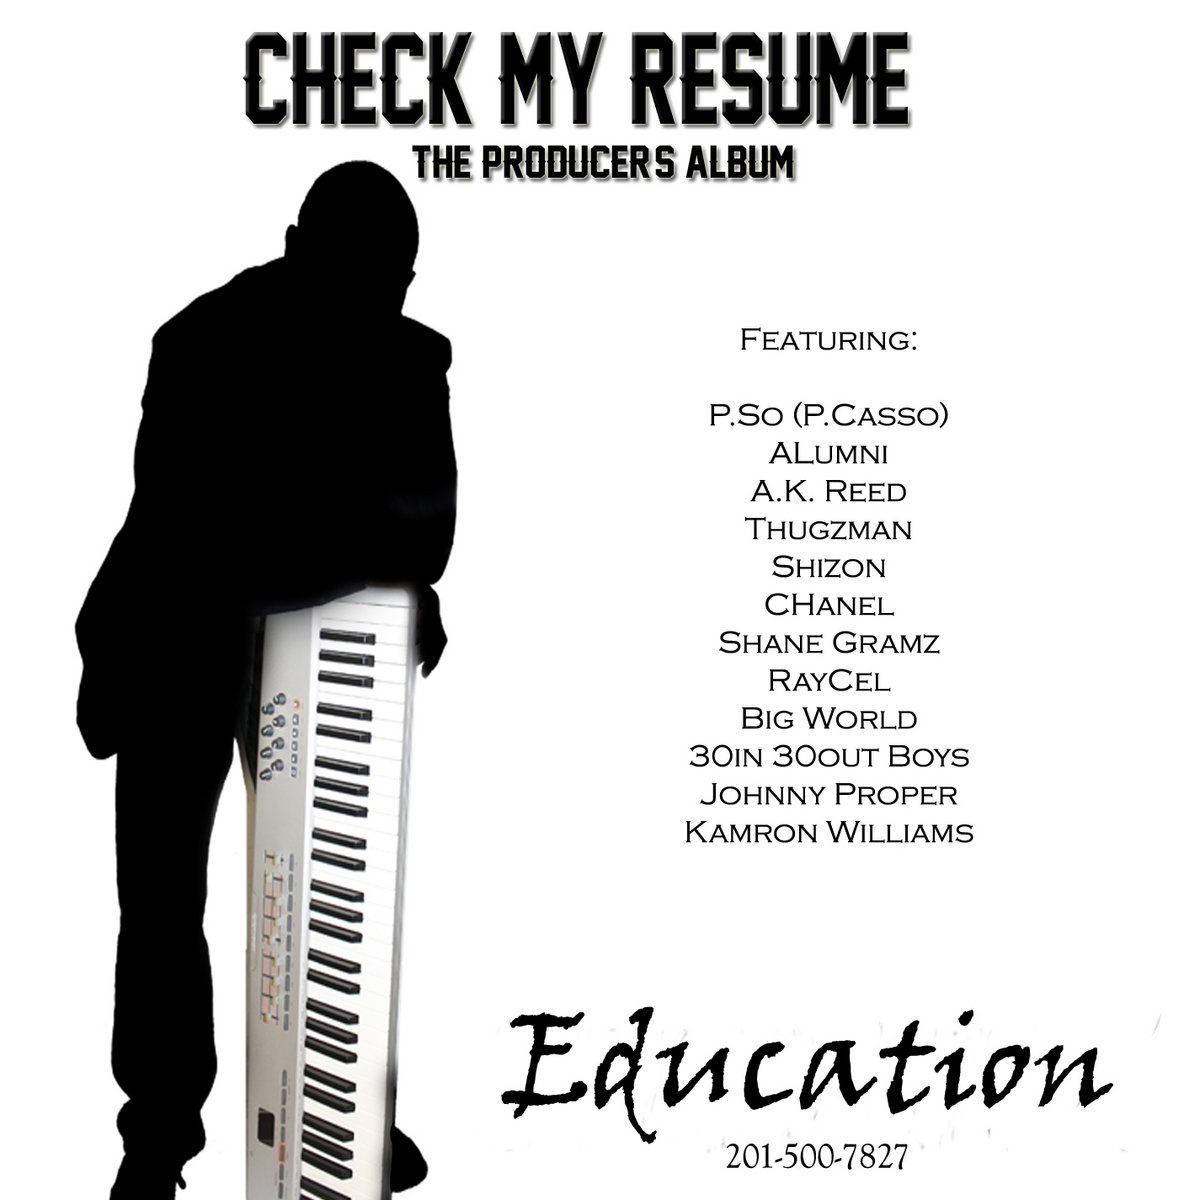 Check My Resume The Producers Album Education